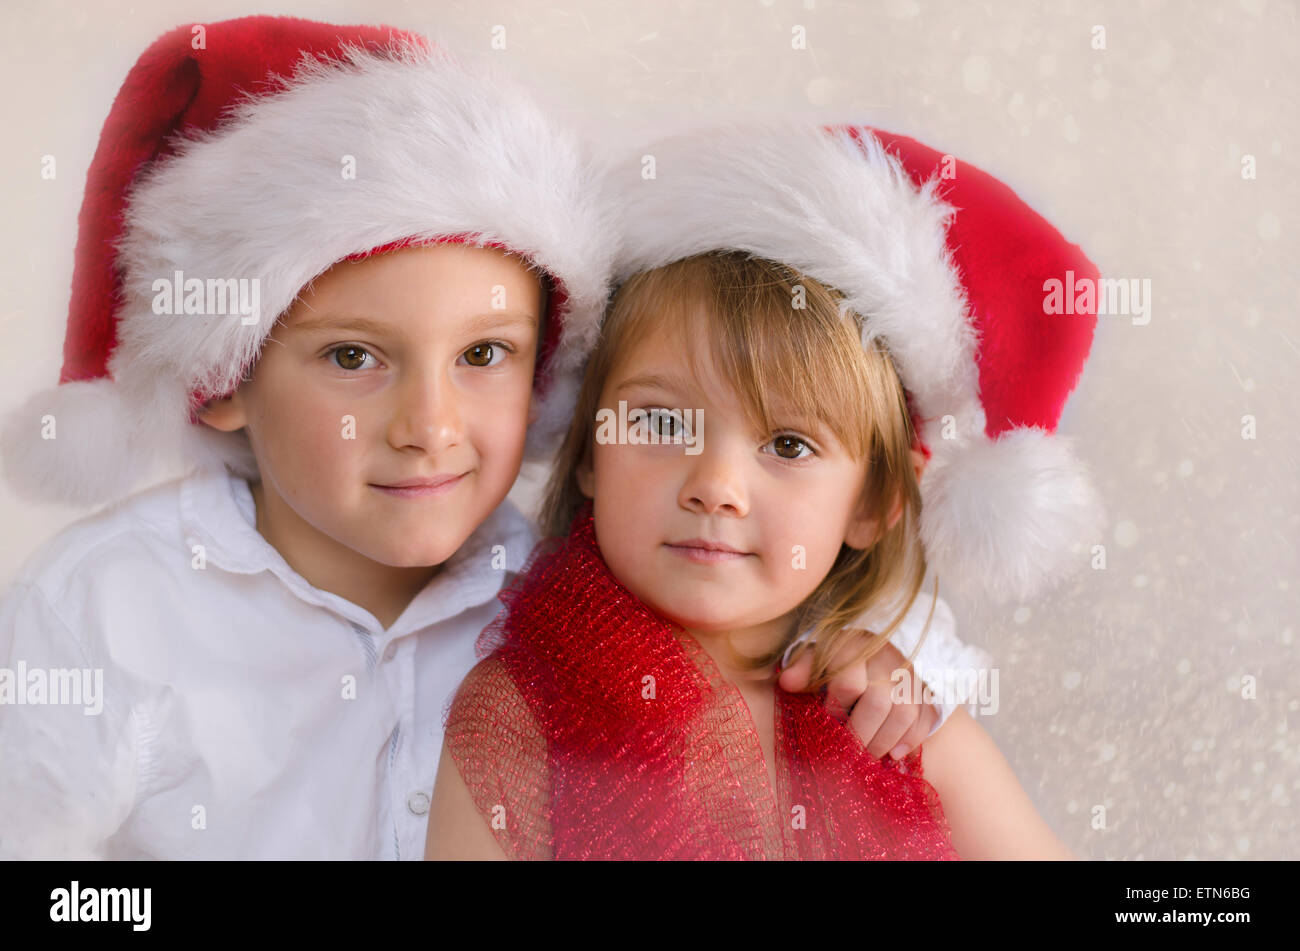 Portrait of two children in Christmas hats - Stock Image